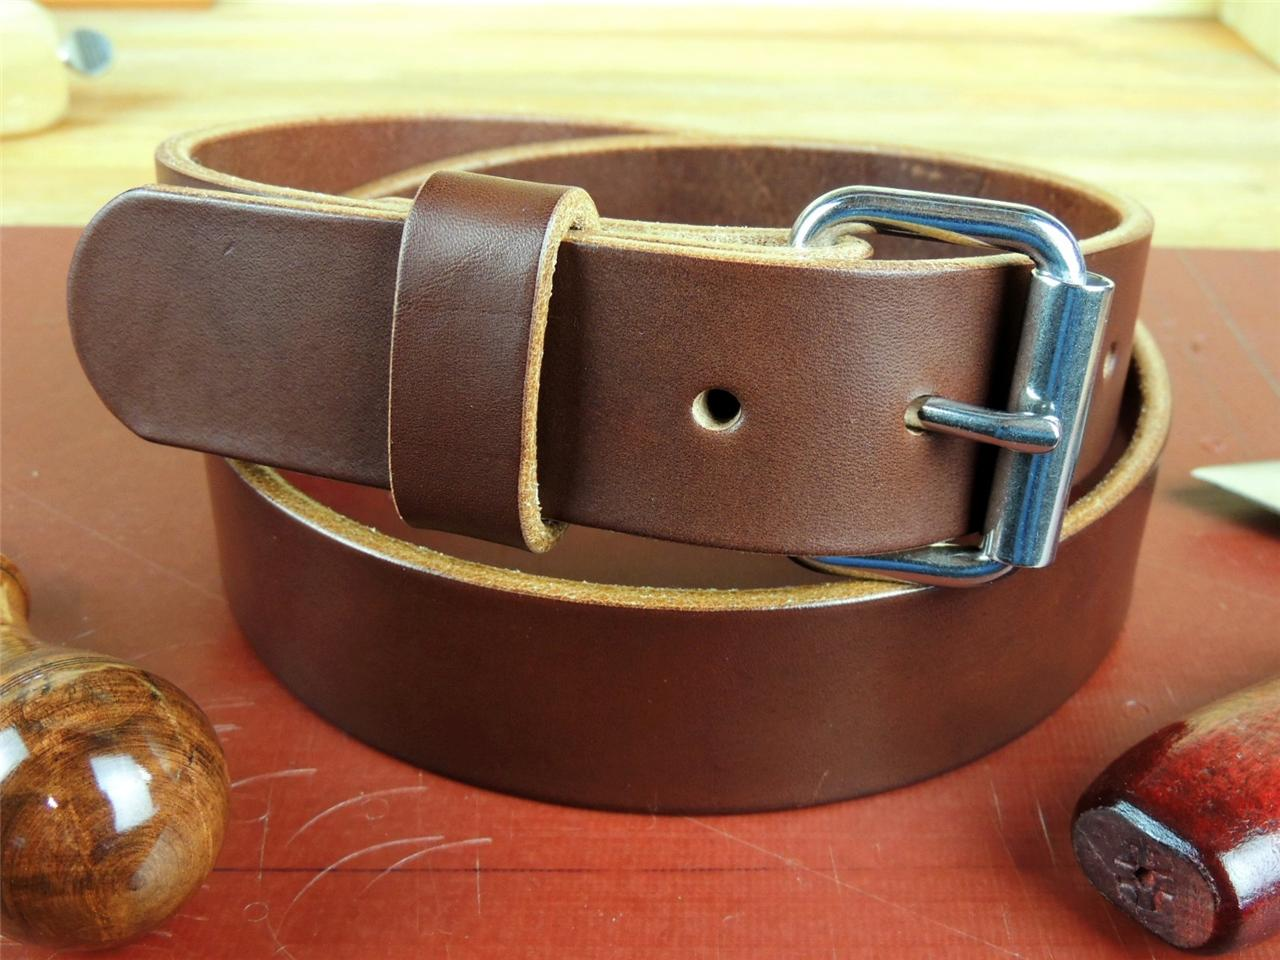 150-1-1-2-034-HEAVY-DUTY-LEATHER-WORK-CCW-GUN-HOLSTER-BELT-AMISH-HANDMADE-1-5-034